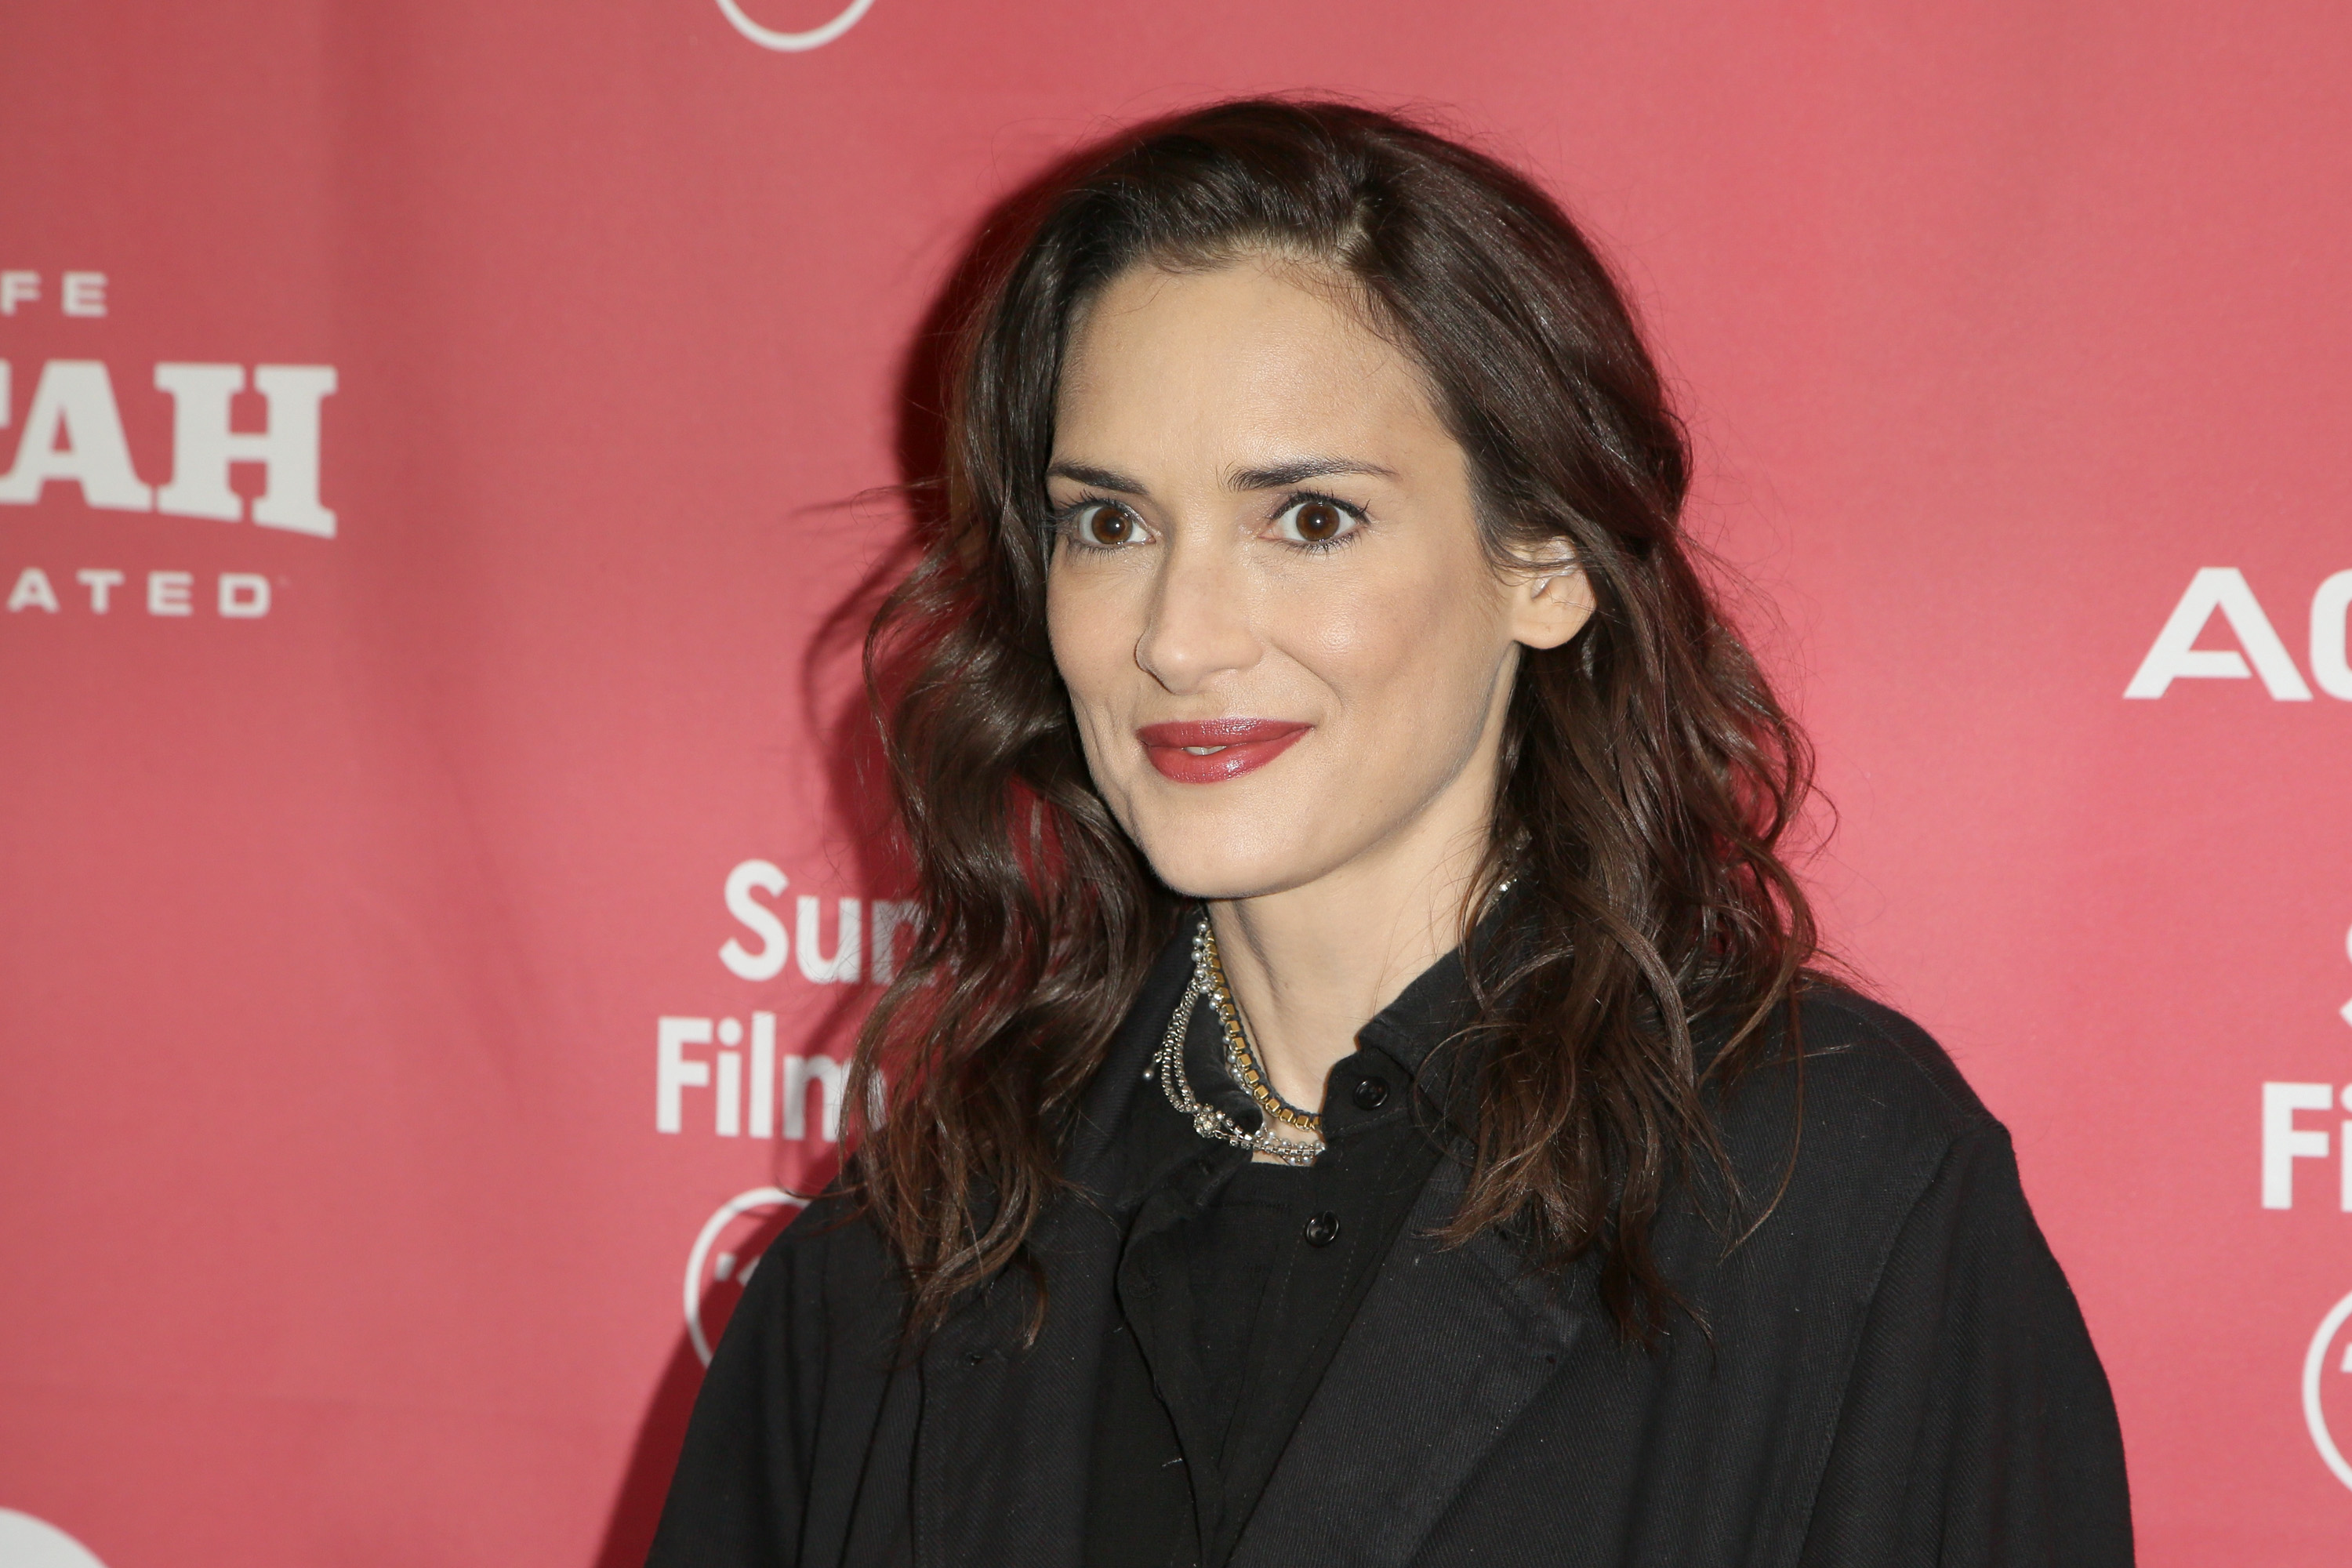 attends the  Experimenter  Premiere during the 2015 Sundance Film Festival at the Eccles Center Theatre on January 25, 2015 in Park City, Utah.